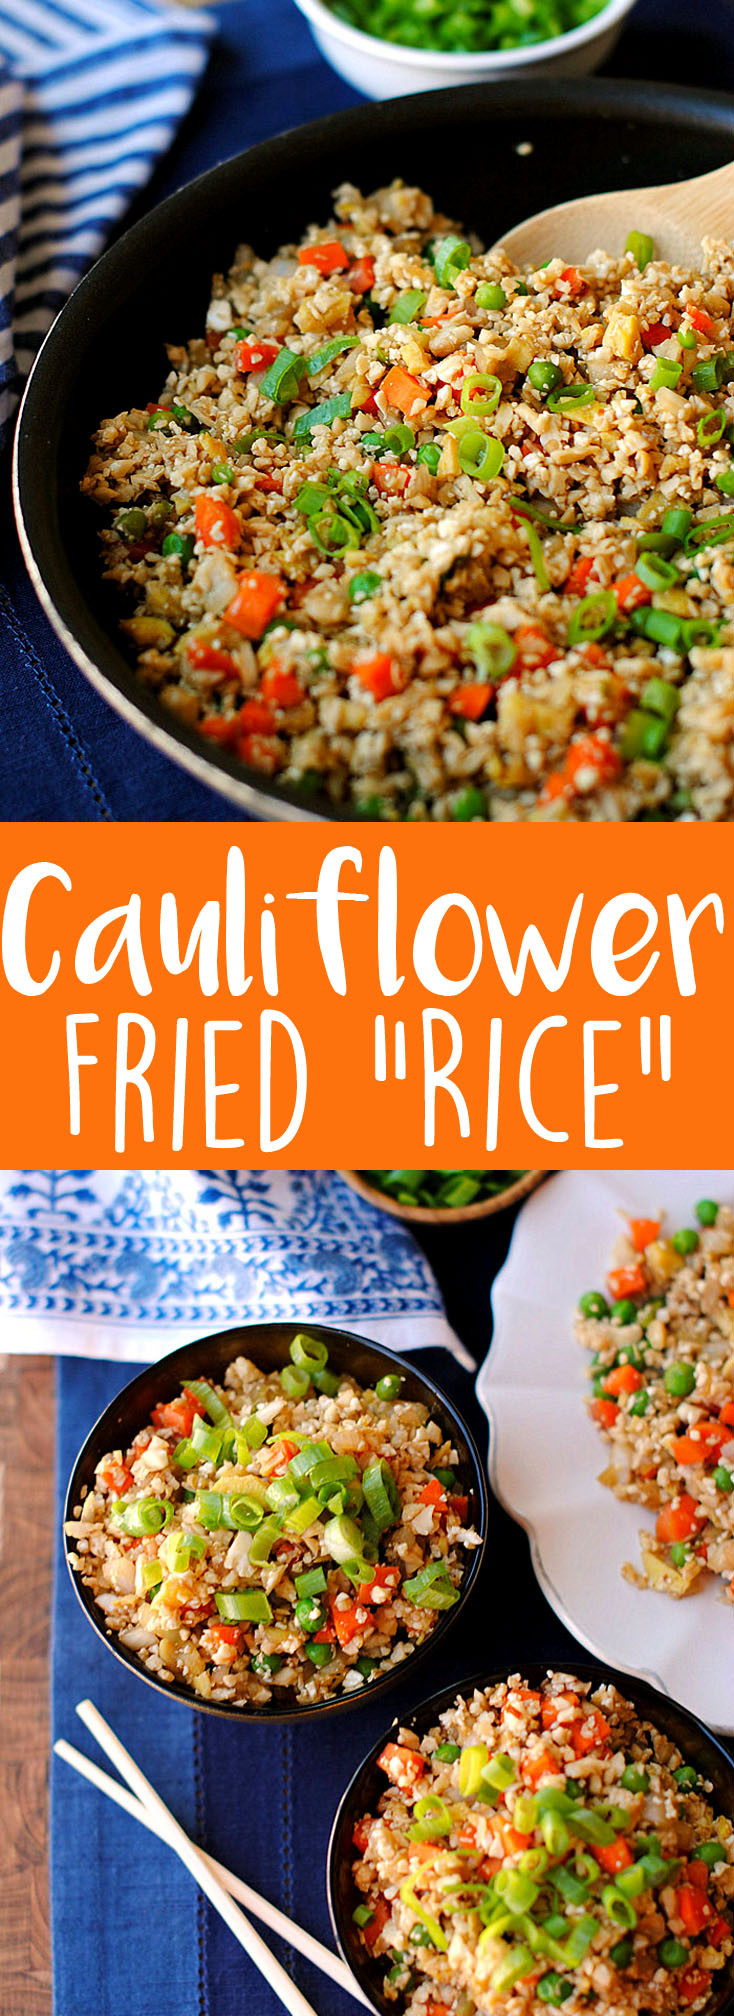 Healthy Cauliflower Fried Rice  Healthy Cauliflower Fried Rice Eat Yourself Skinny